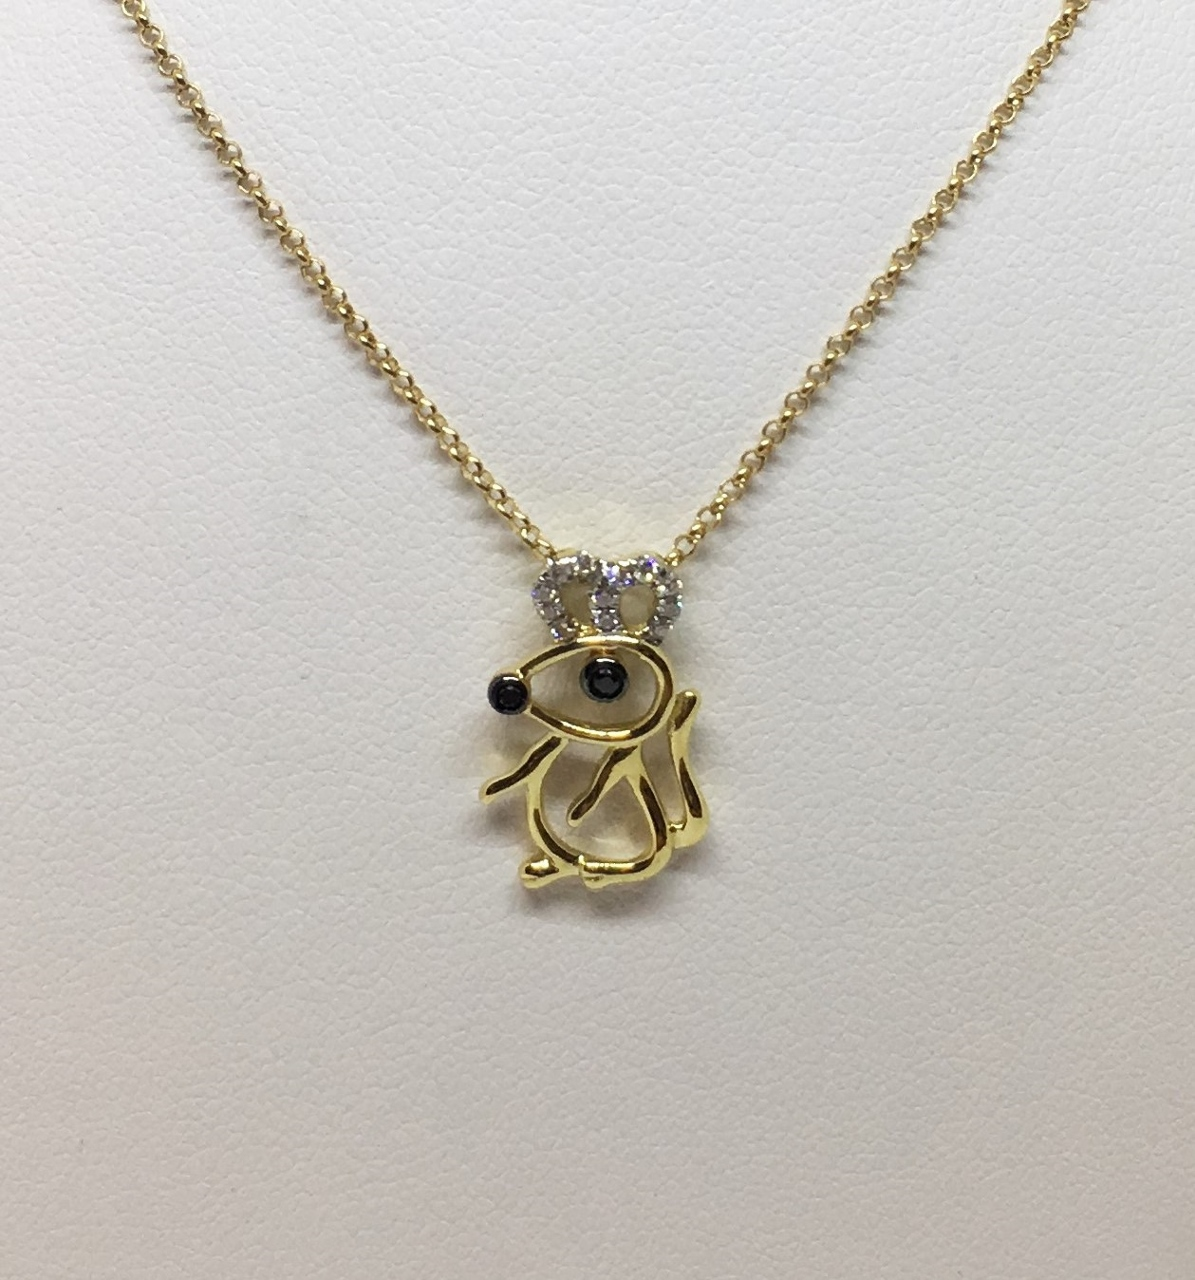 18K Yellow Gold Mouse Design Pendant With Chain